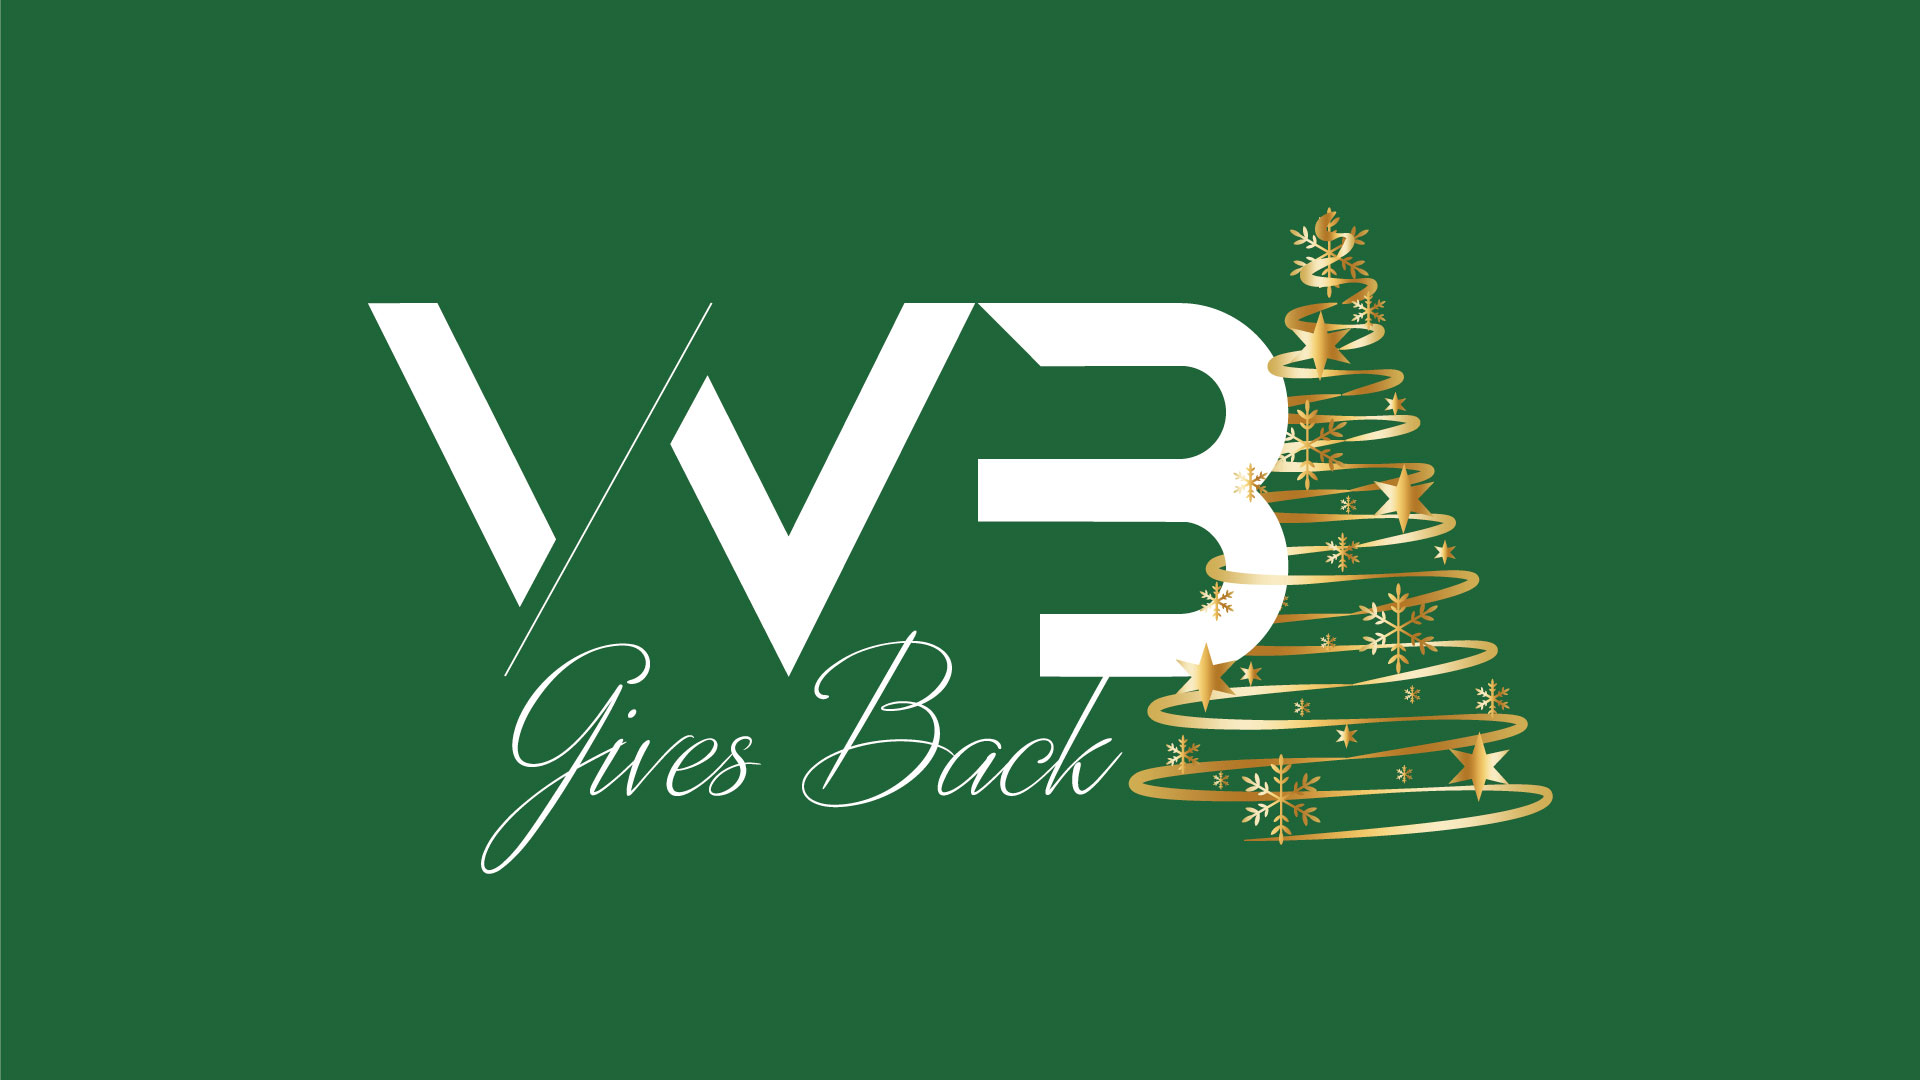 WB GIVES BACK: tempo de retribuir as conquistas alcançadas